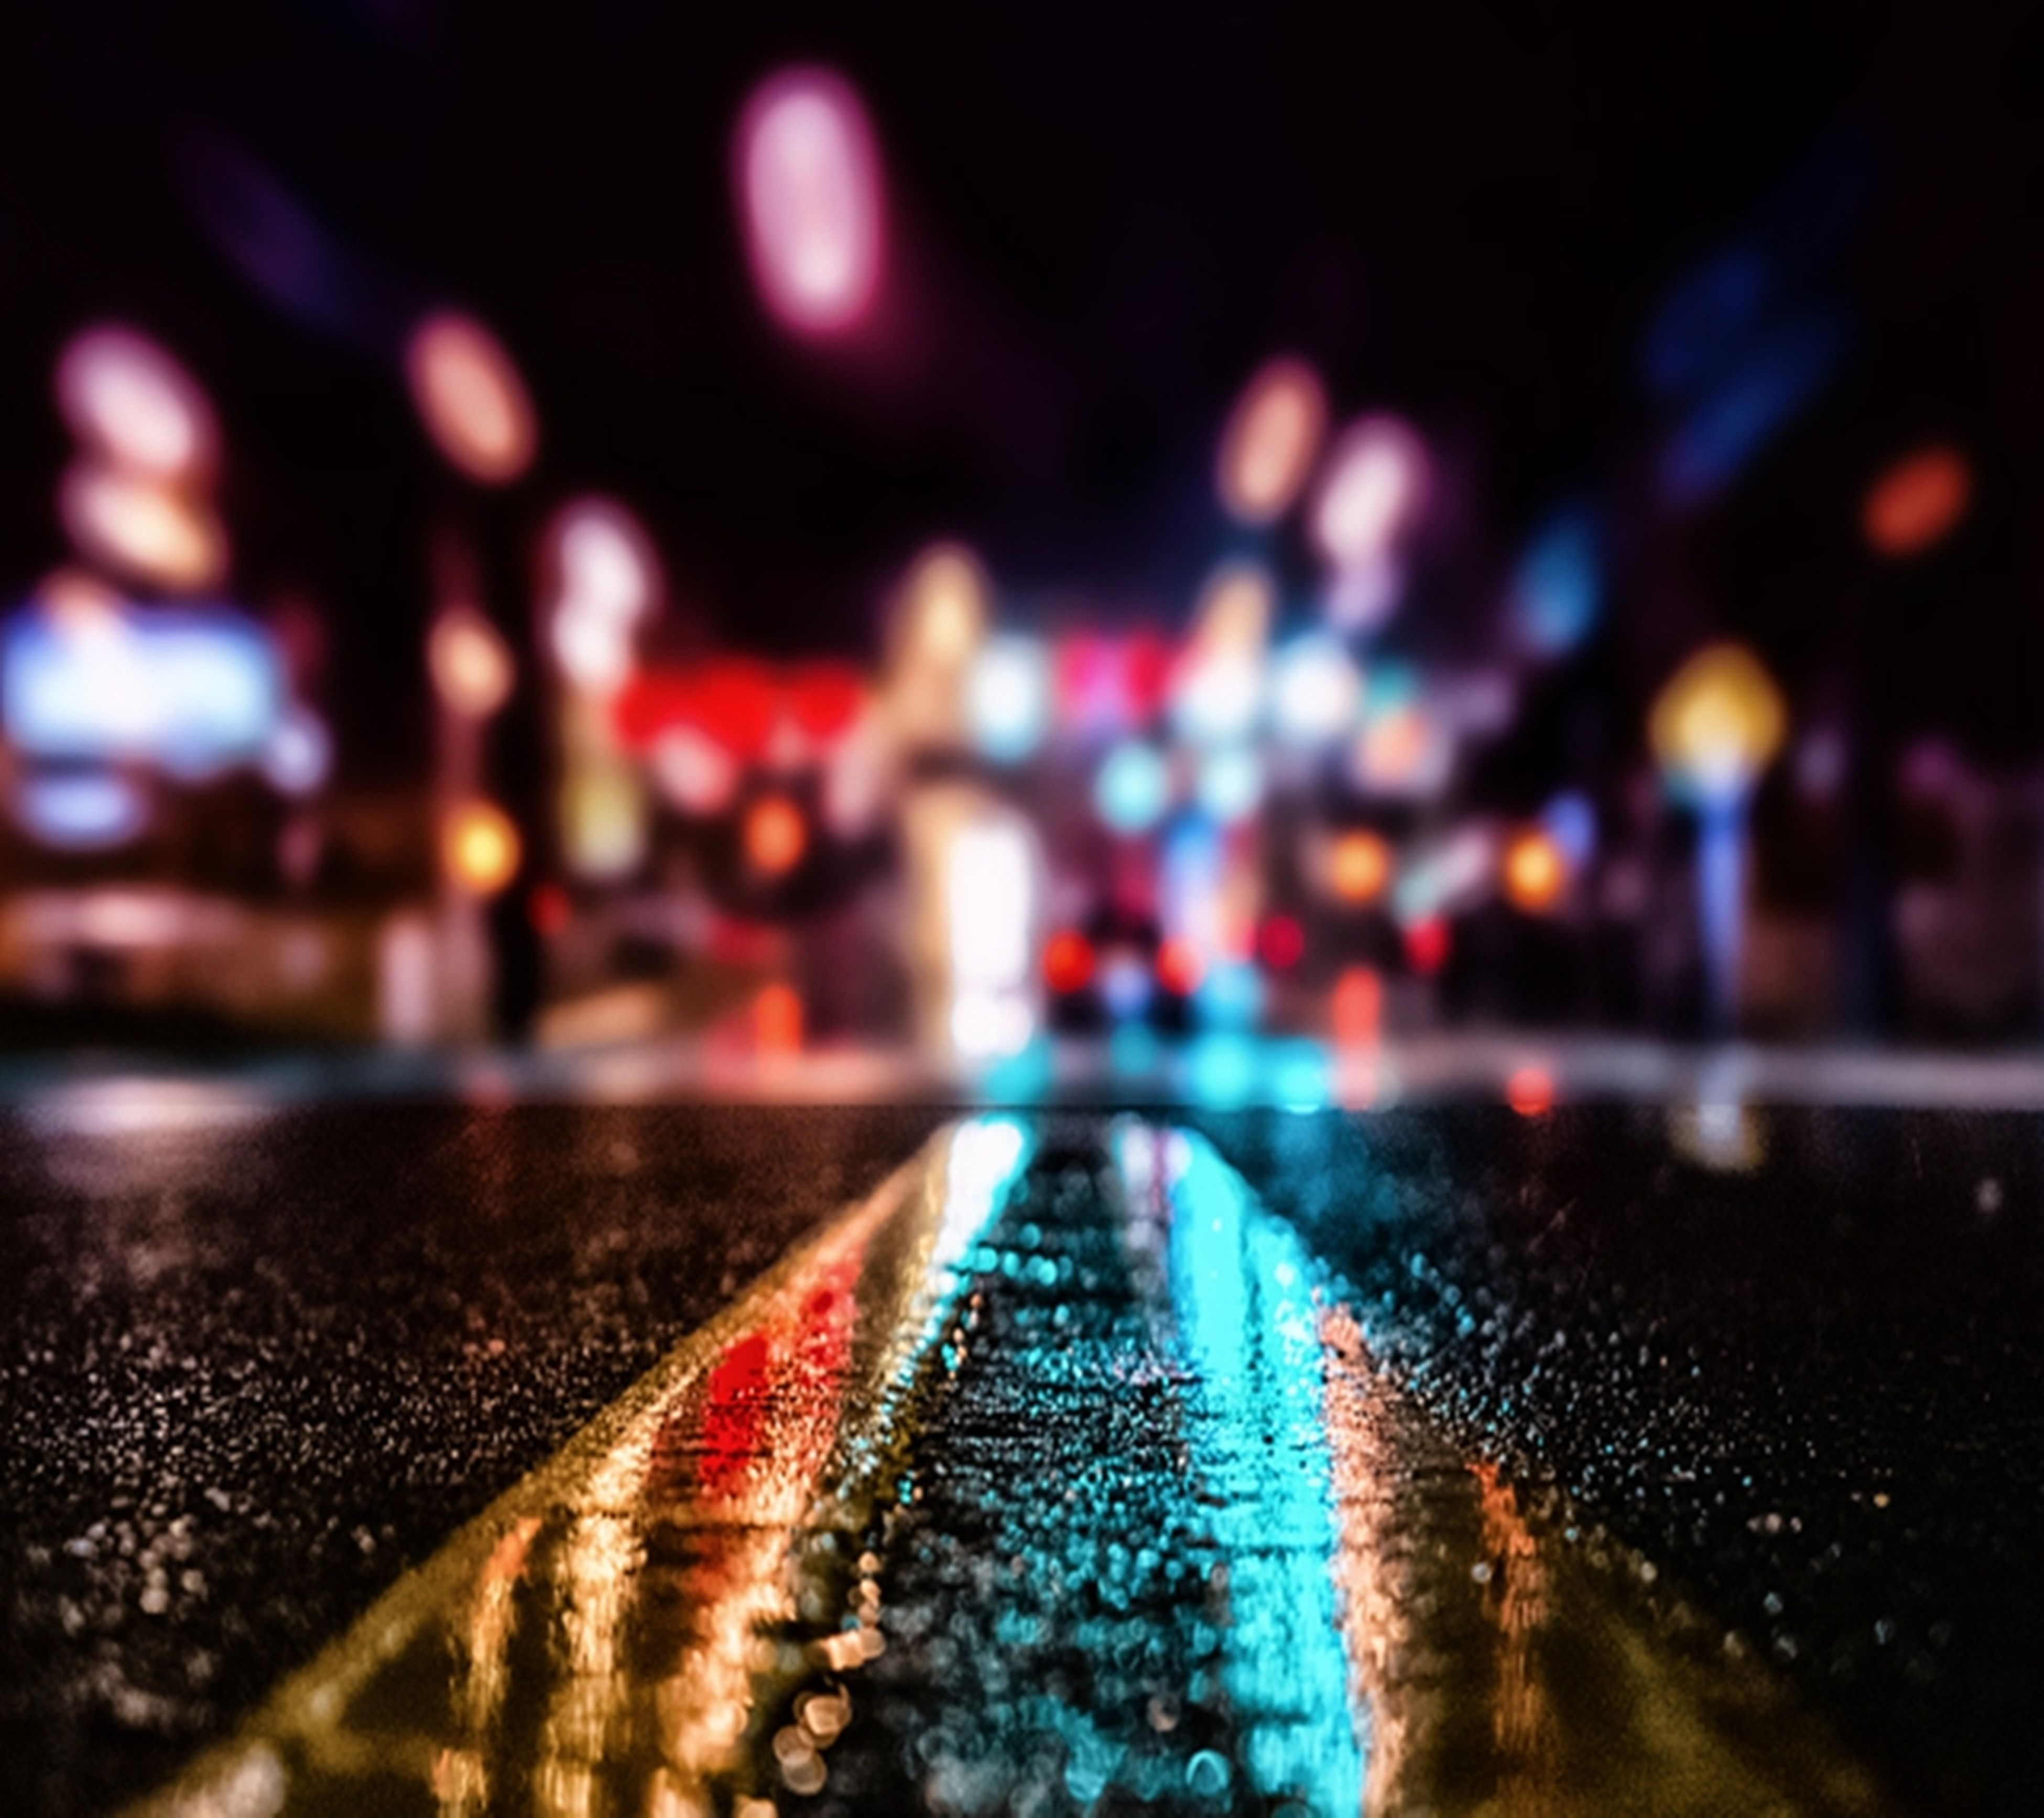 surface level, selective focus, the way forward, illuminated, night, diminishing perspective, street, focus on foreground, vanishing point, defocused, road, outdoors, cobblestone, close-up, no people, transportation, footpath, built structure, pattern, empty